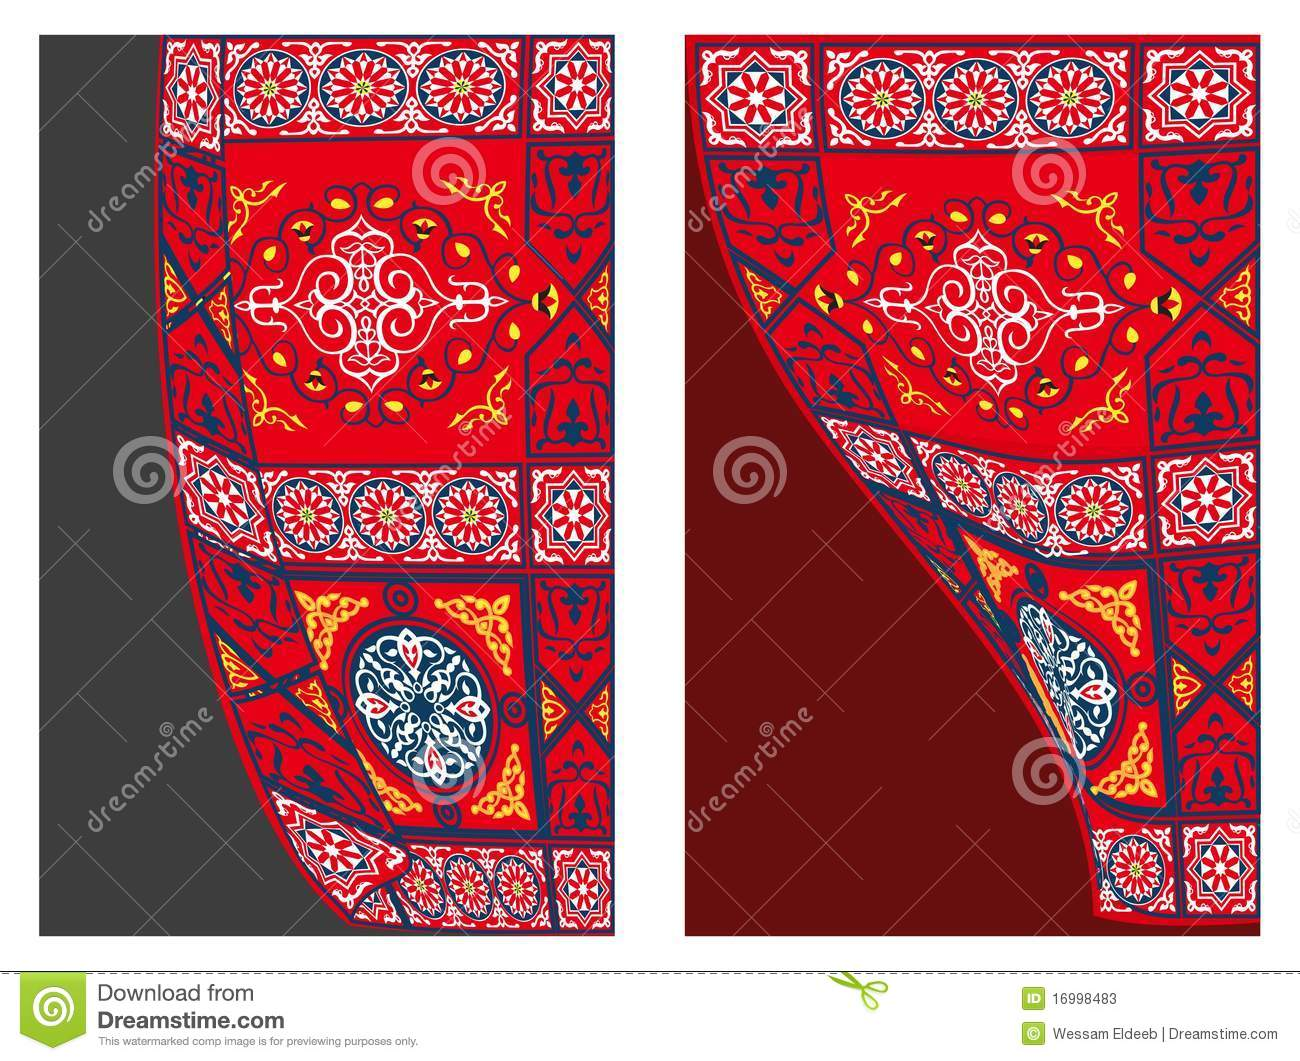 Egyptian Tent Fabric-Curtain Style 1 Stock Photos  sc 1 st  Dreamstime.com & Egyptian Tent Fabric Pattern 1-blue Stock Vector - Illustration of ...